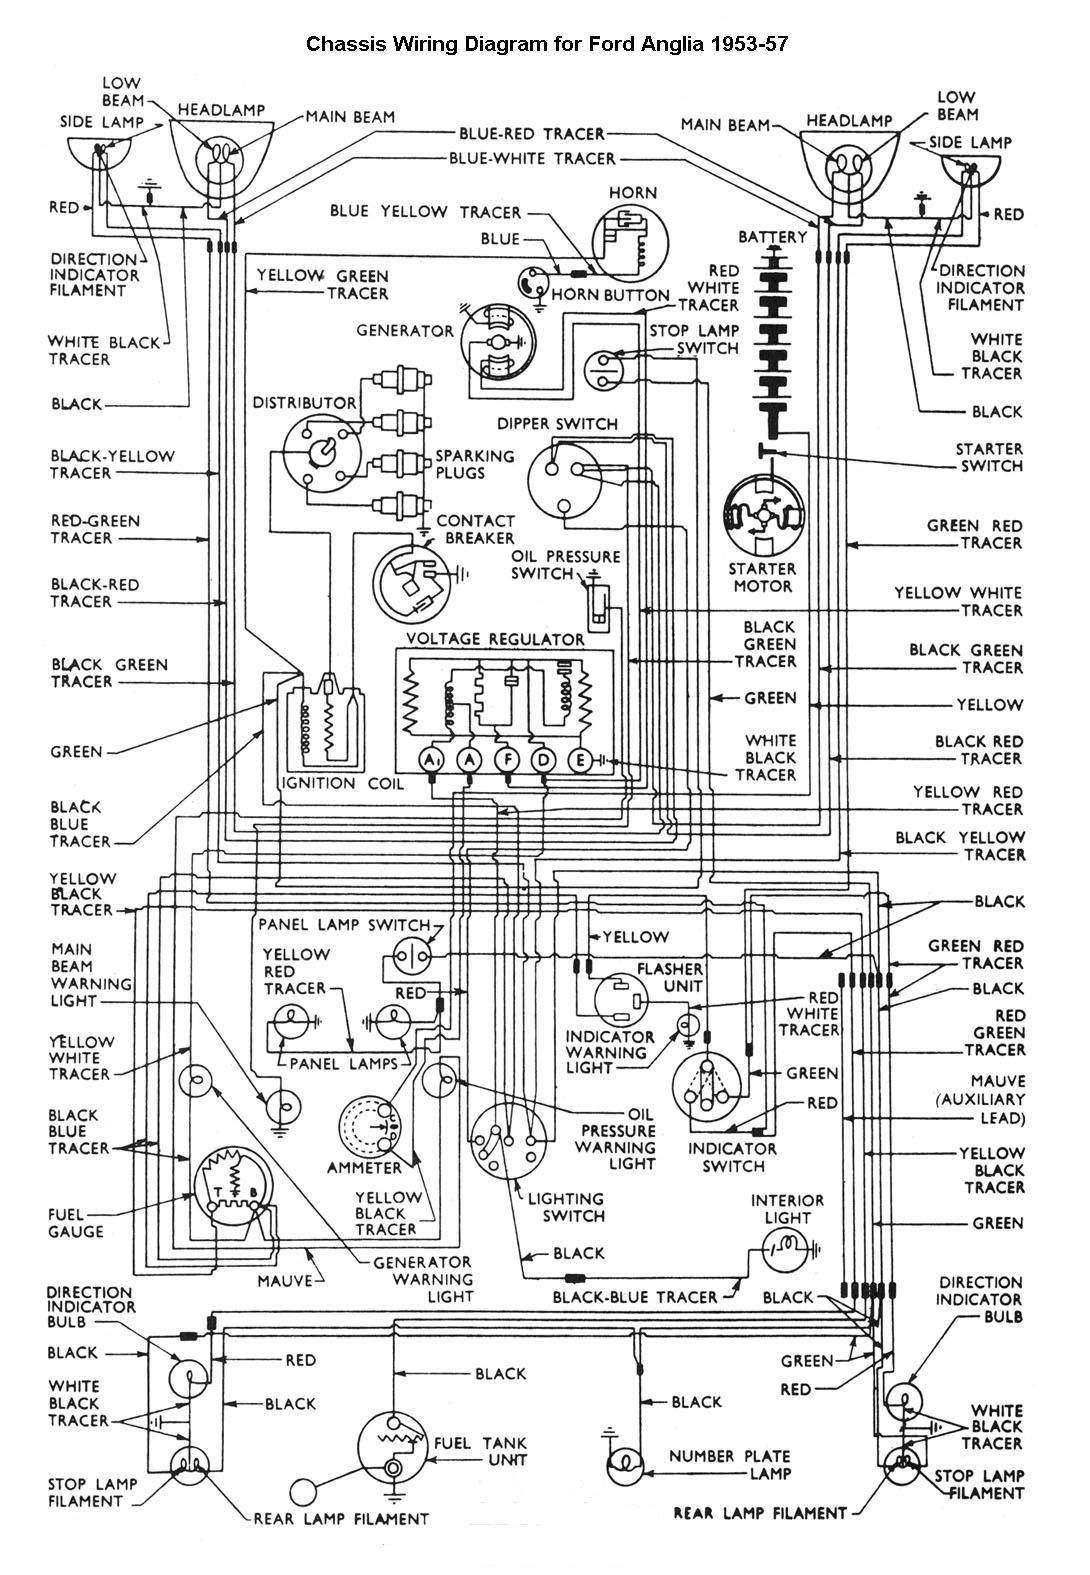 small resolution of car wiring diagram mech truck repair cars motor car rover 75 electrical circuit diagrams auto repair manual forum